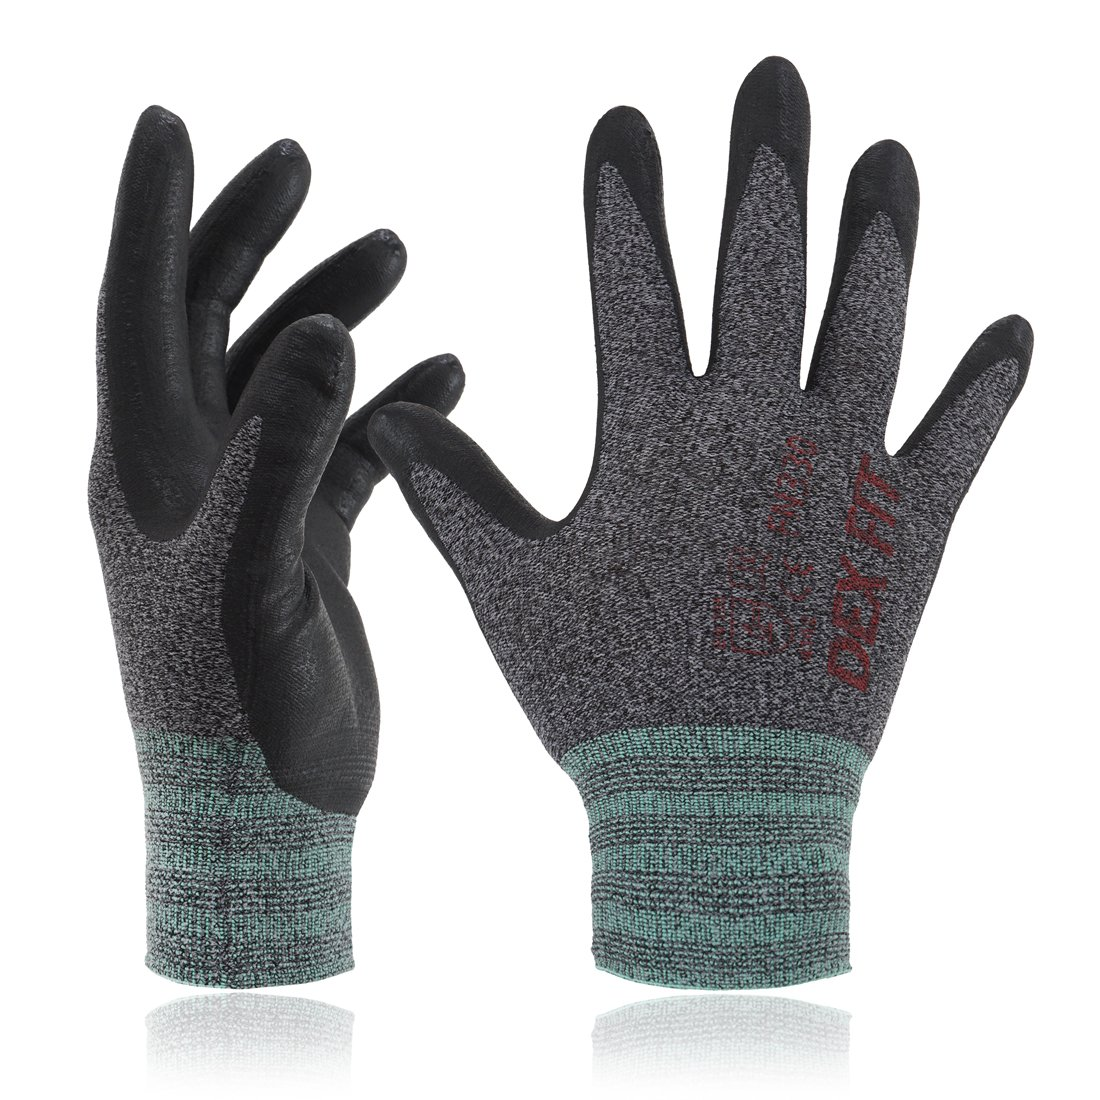 DEX FIT Black Nylon Work Gloves FN320, 3D Comfort Stretch Fit, Power Grip, Thin Lightweight, Durable Nitrile Foam Coating, Machine Washable, X-Small 3 Pairs Pack MUVEEN CO. LTD FN 330